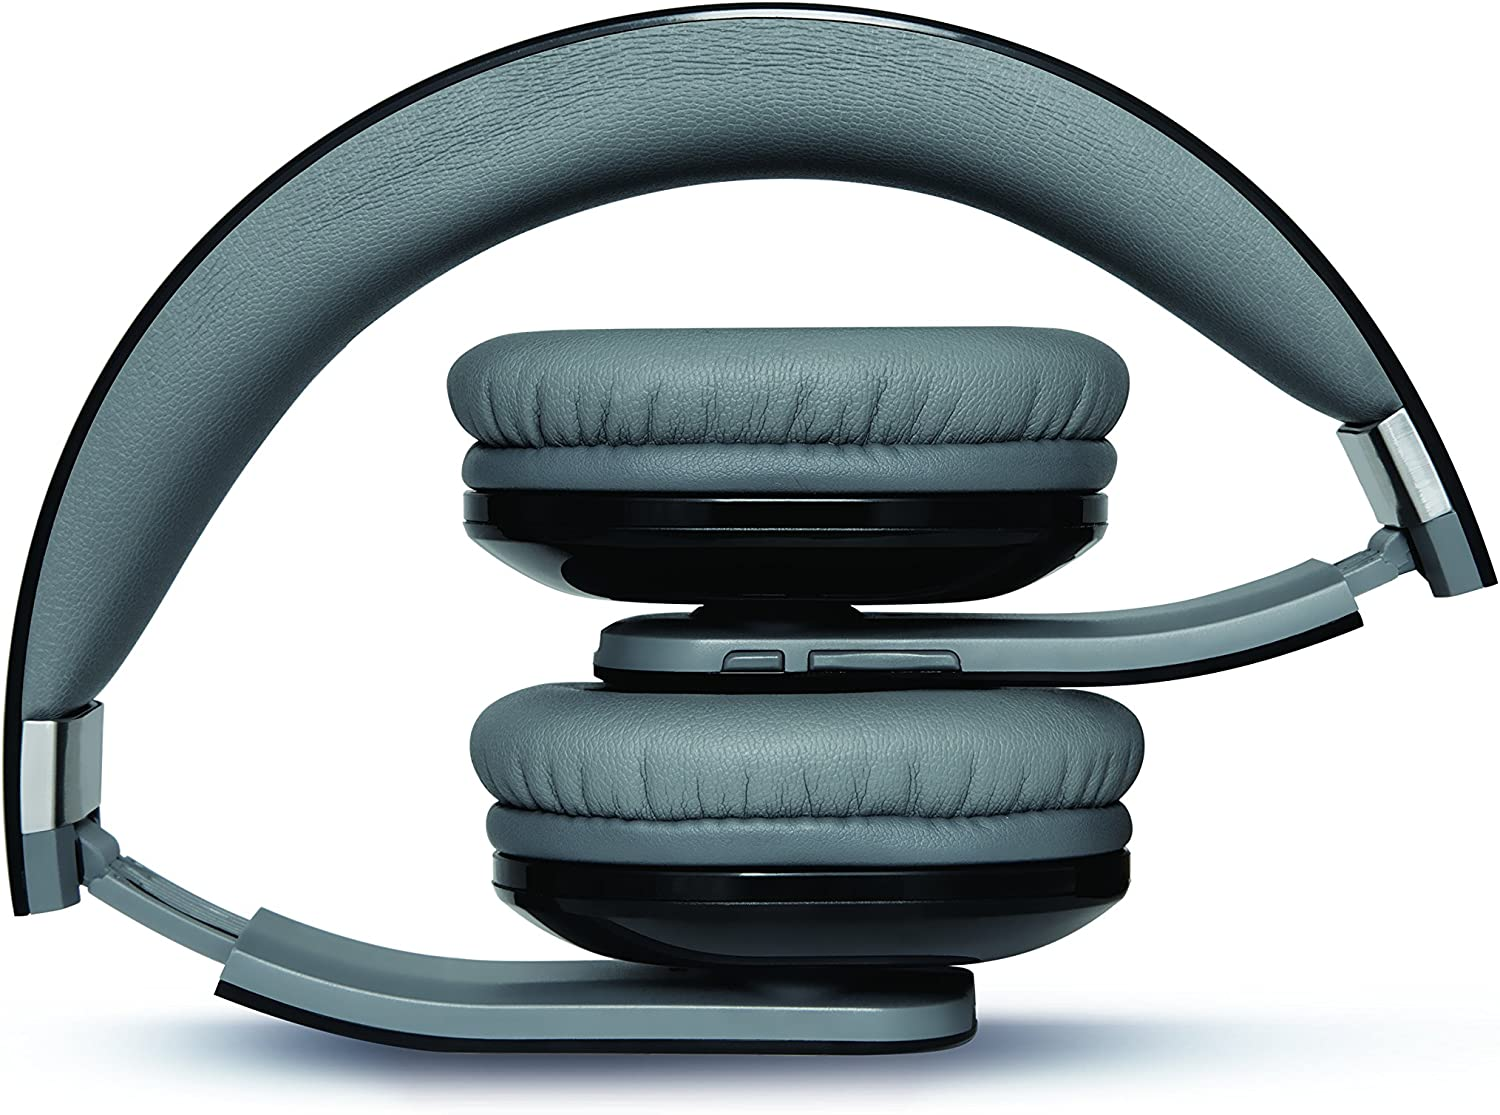 Numark HF325   Professional DJ Headphones with Rotating On-Ear Cups for Hands-Free Single-Ear Monitoring